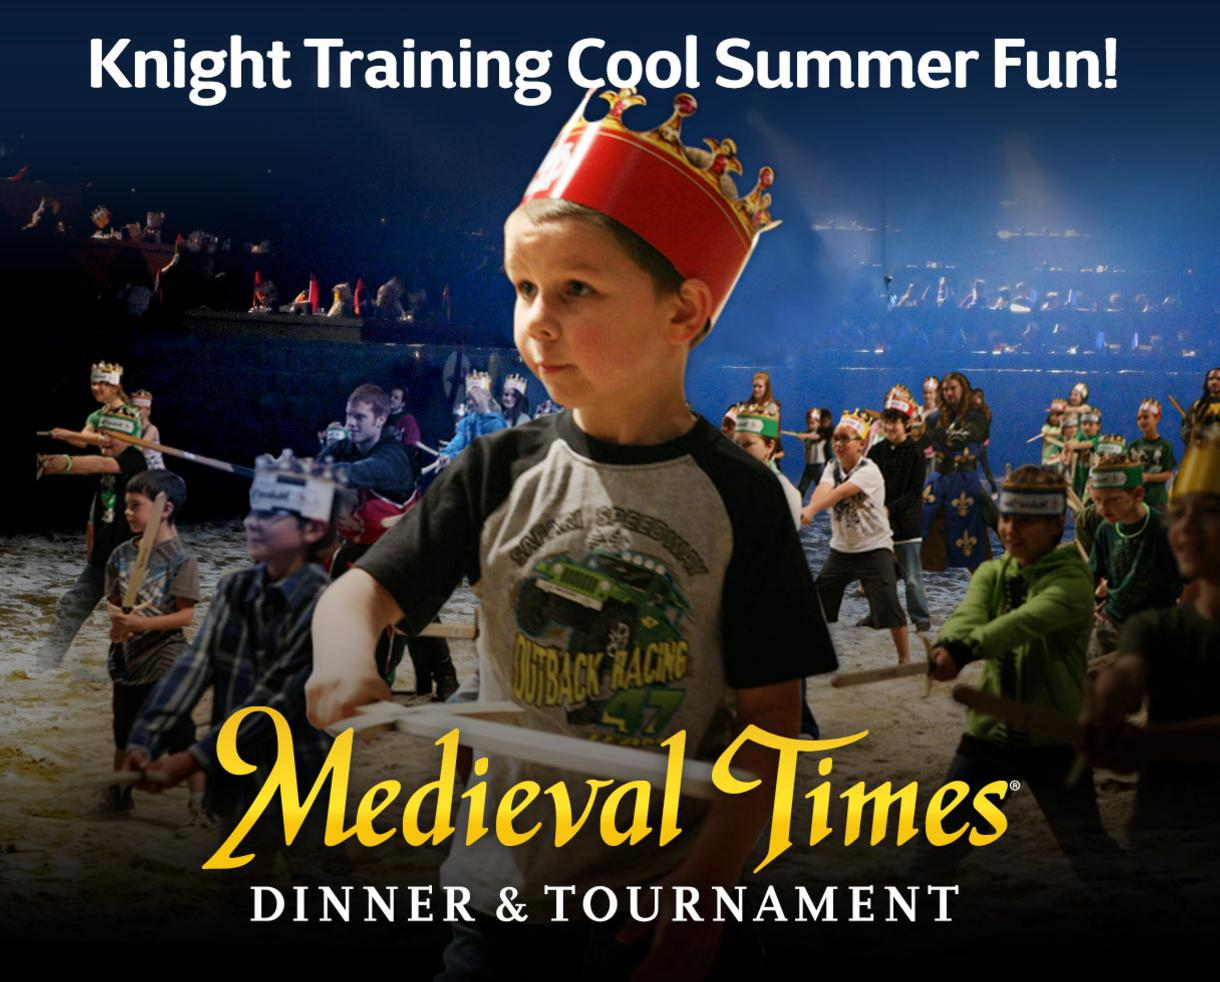 Up to 42% Off Medieval Times + Junior Knight Training FREE with Child's Admission for Ages 5-12 in Hanover, MD